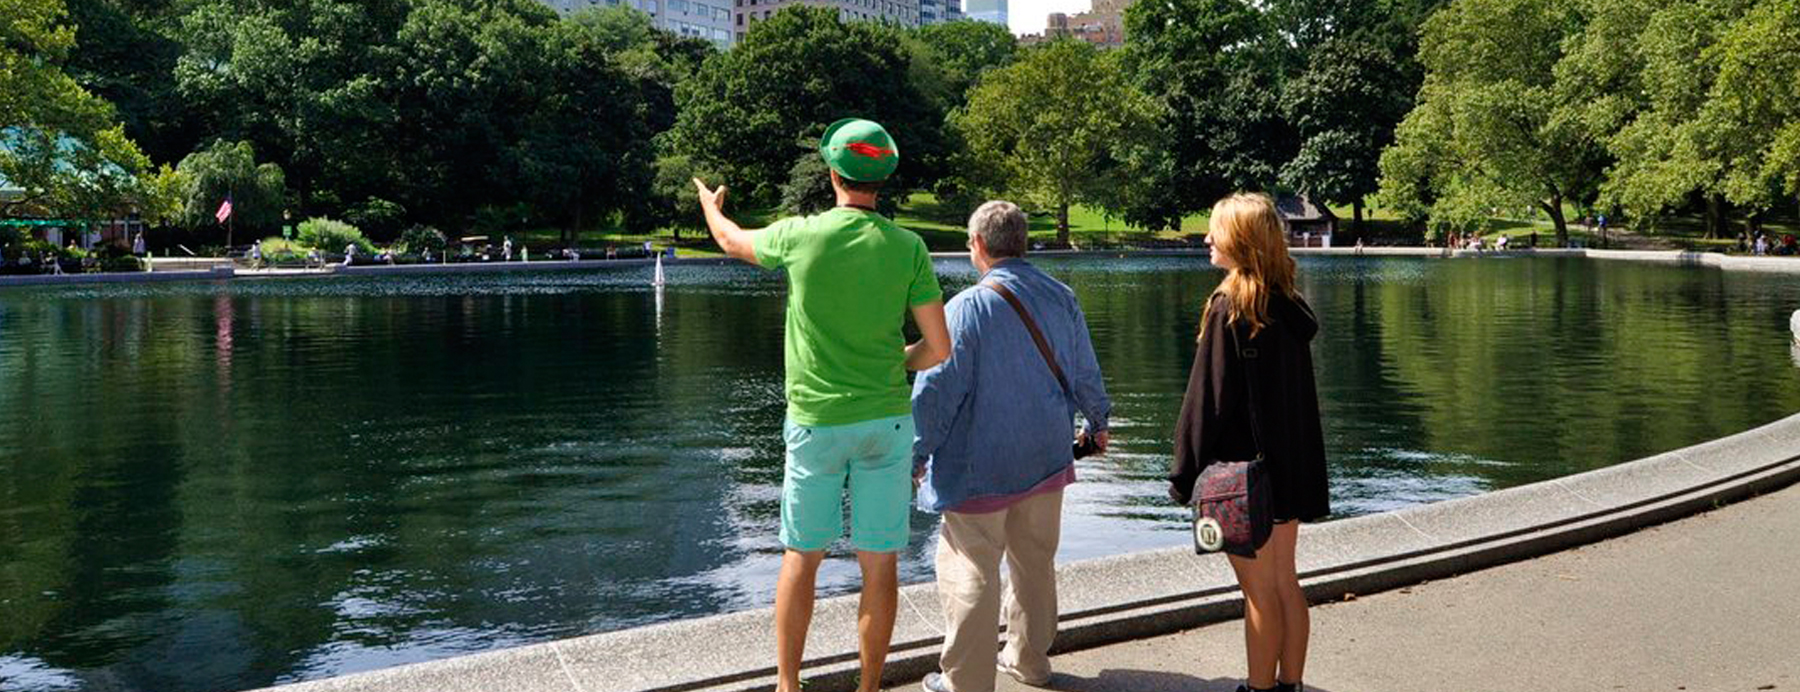 central-park-walking-tour